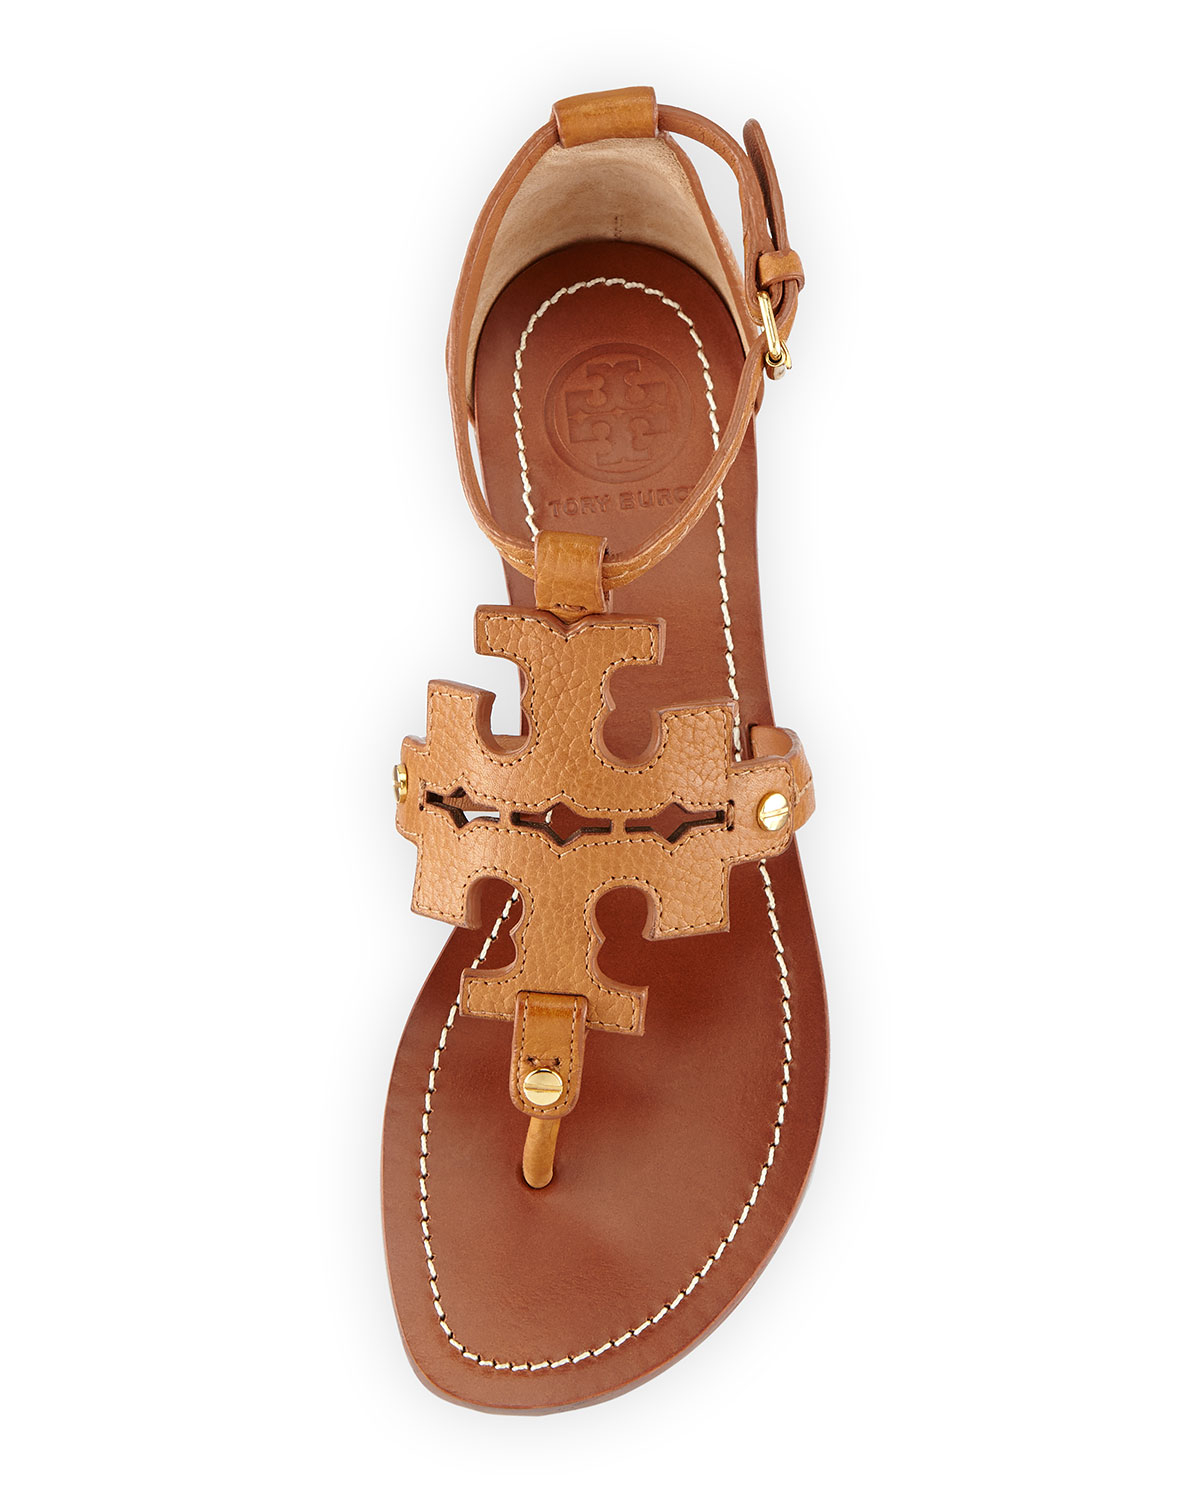 64e5a015c ... get lyst tory burch phoebe logo flat thong sandal tan in brown 7d745  1fd49 ...